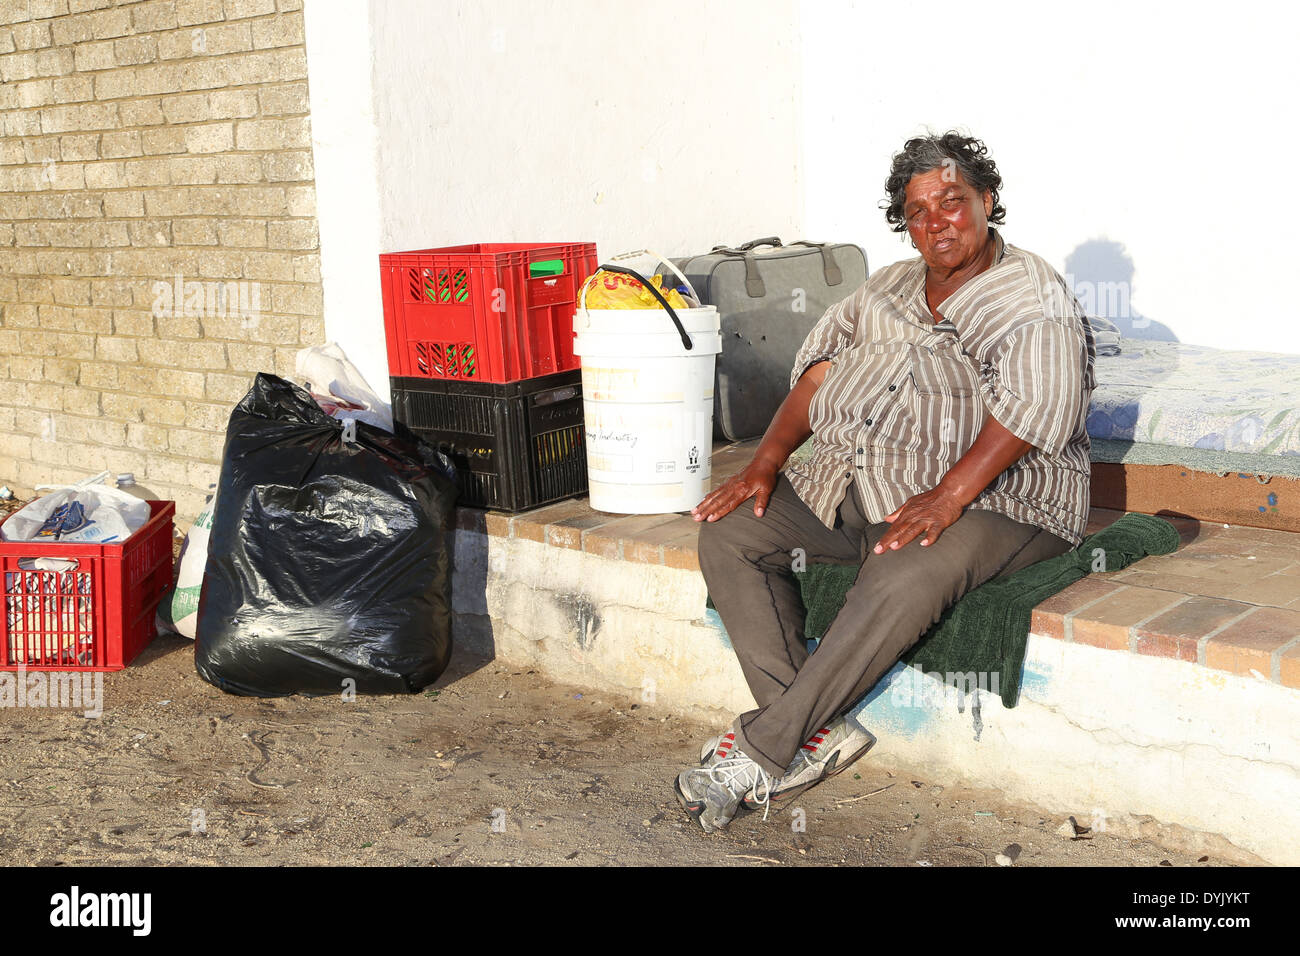 HOMELESS MIXED RACE ELDERLY WOMAN IN CAPE TOWN - Stock Image